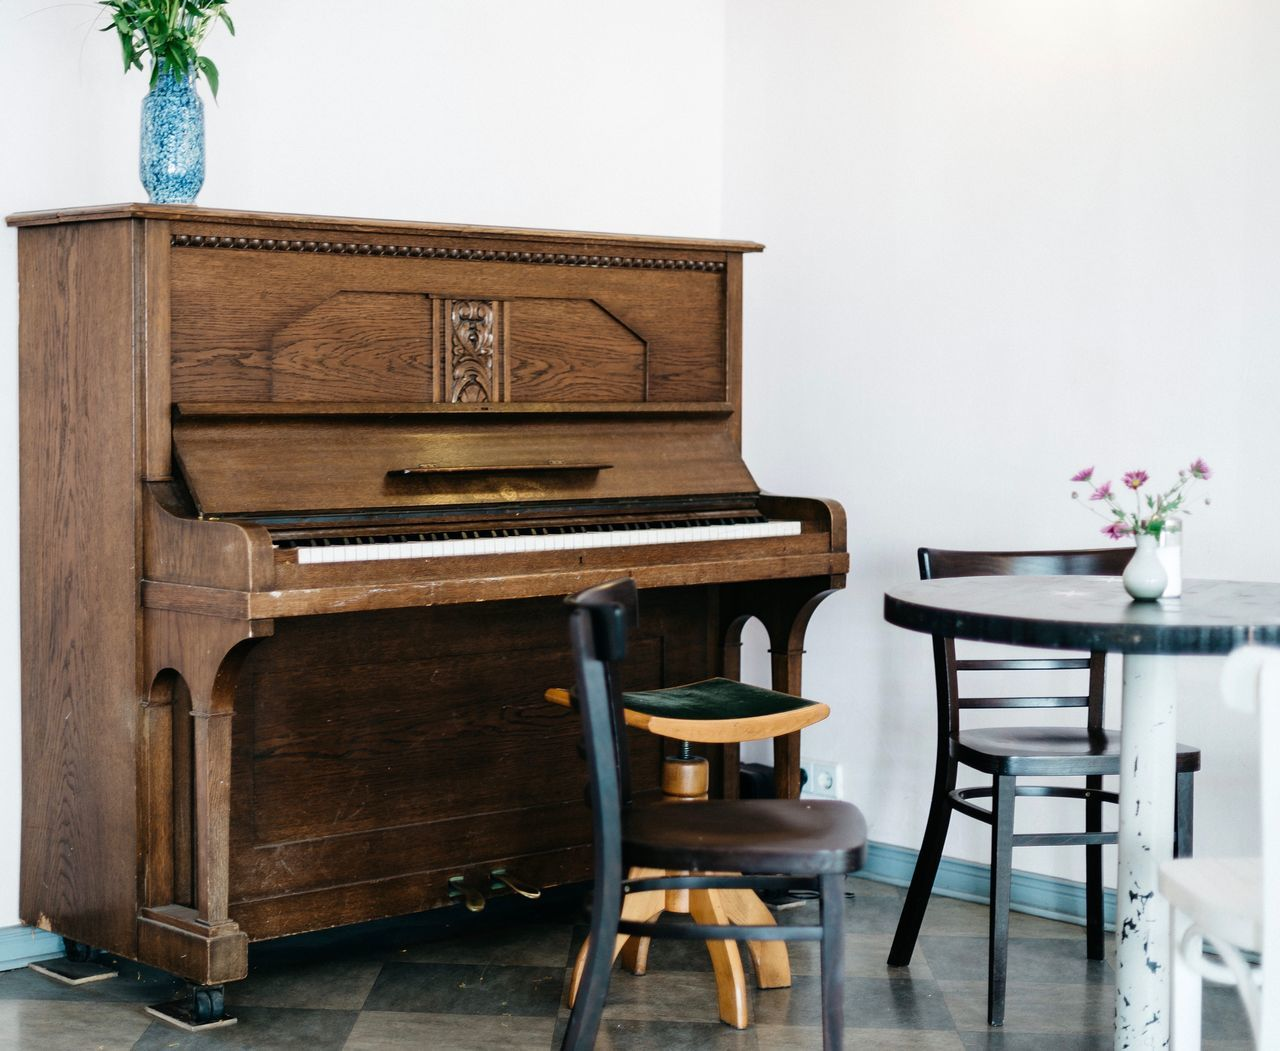 Piano at dining area